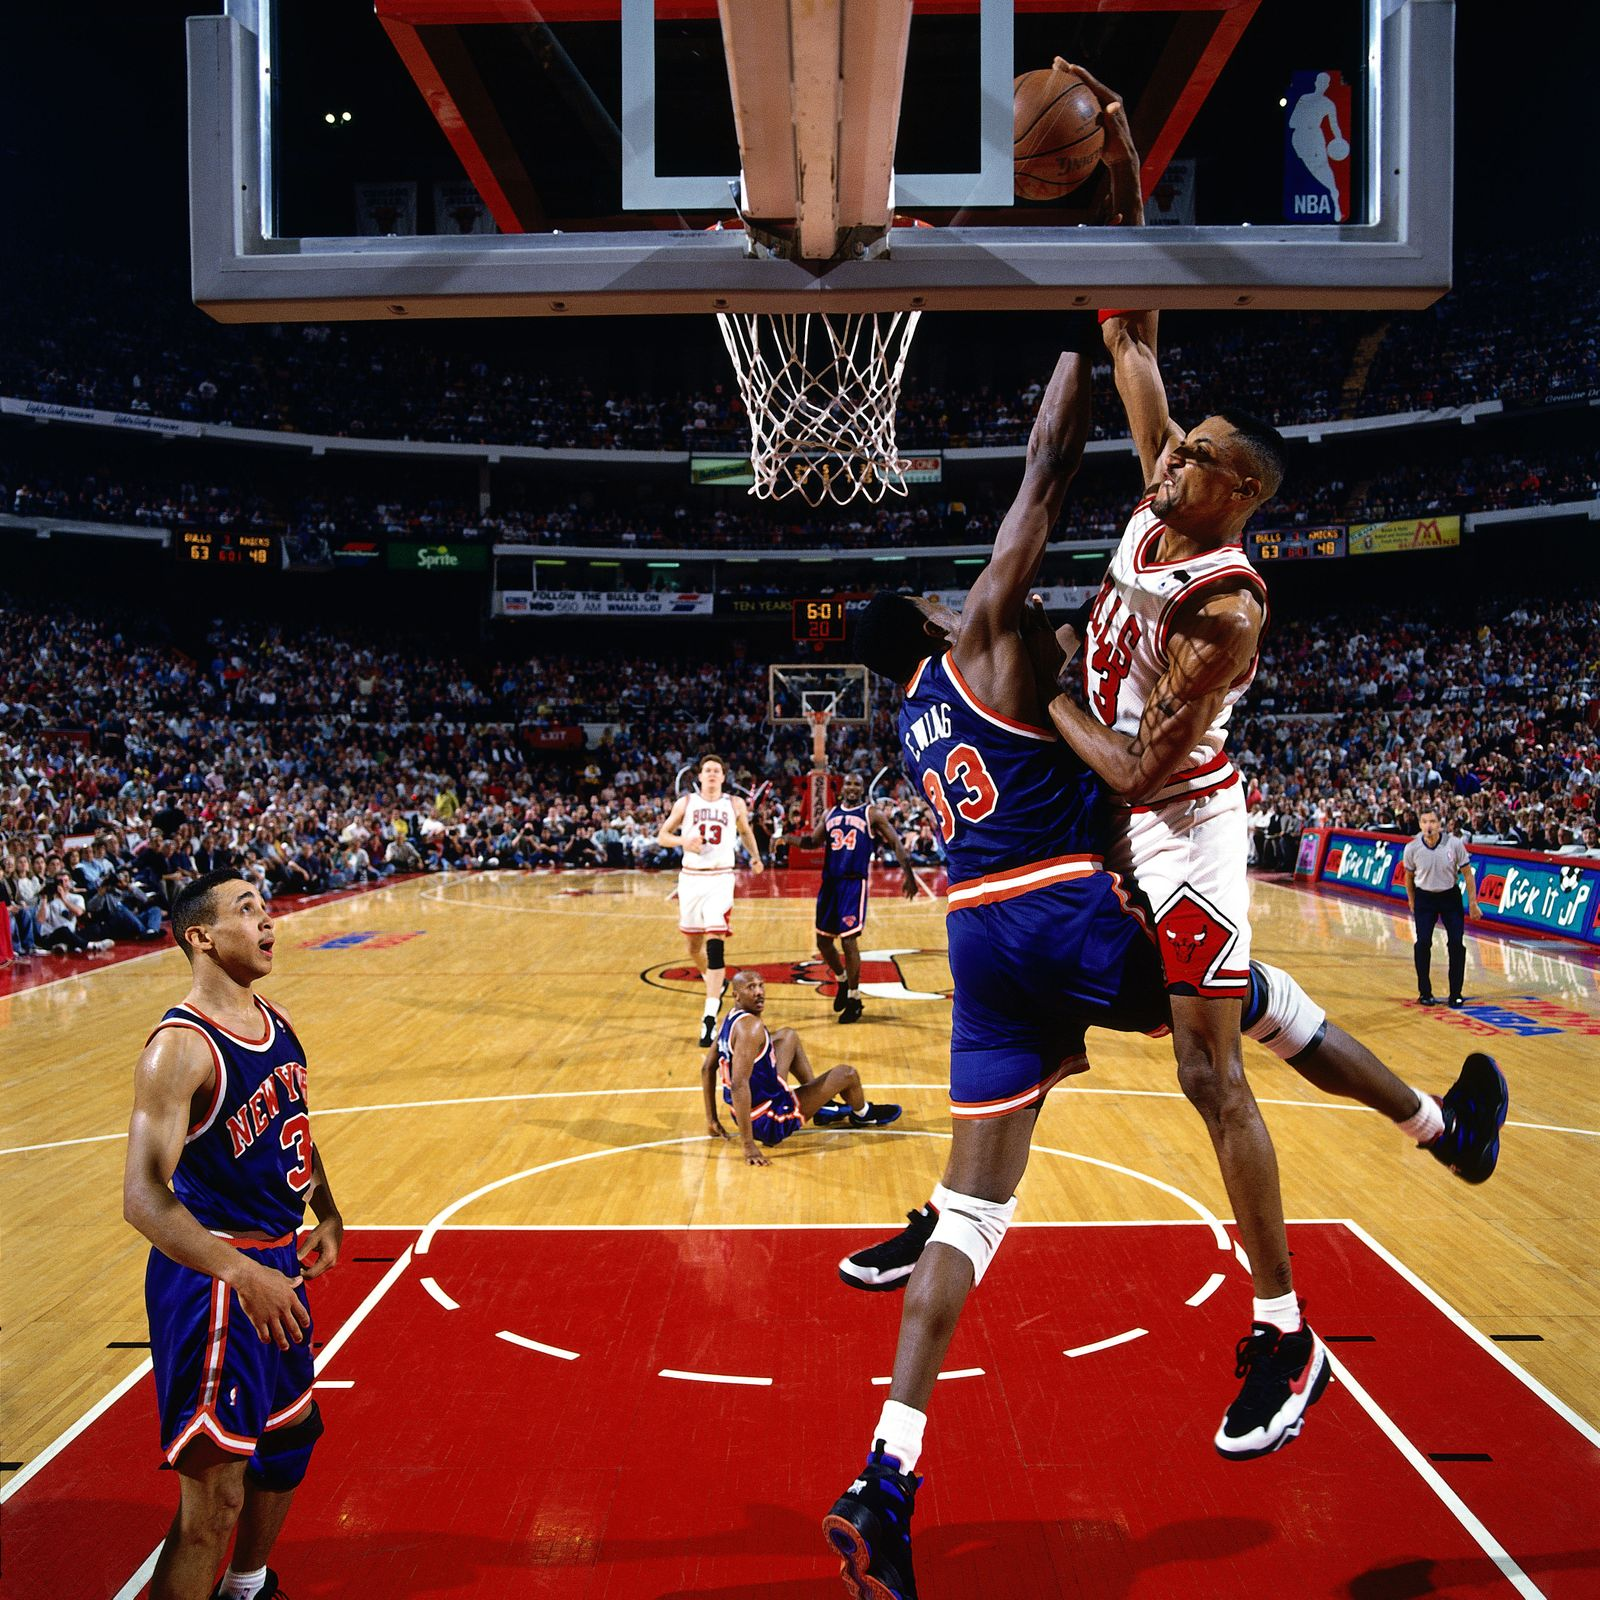 Pippen dunks over Ewing